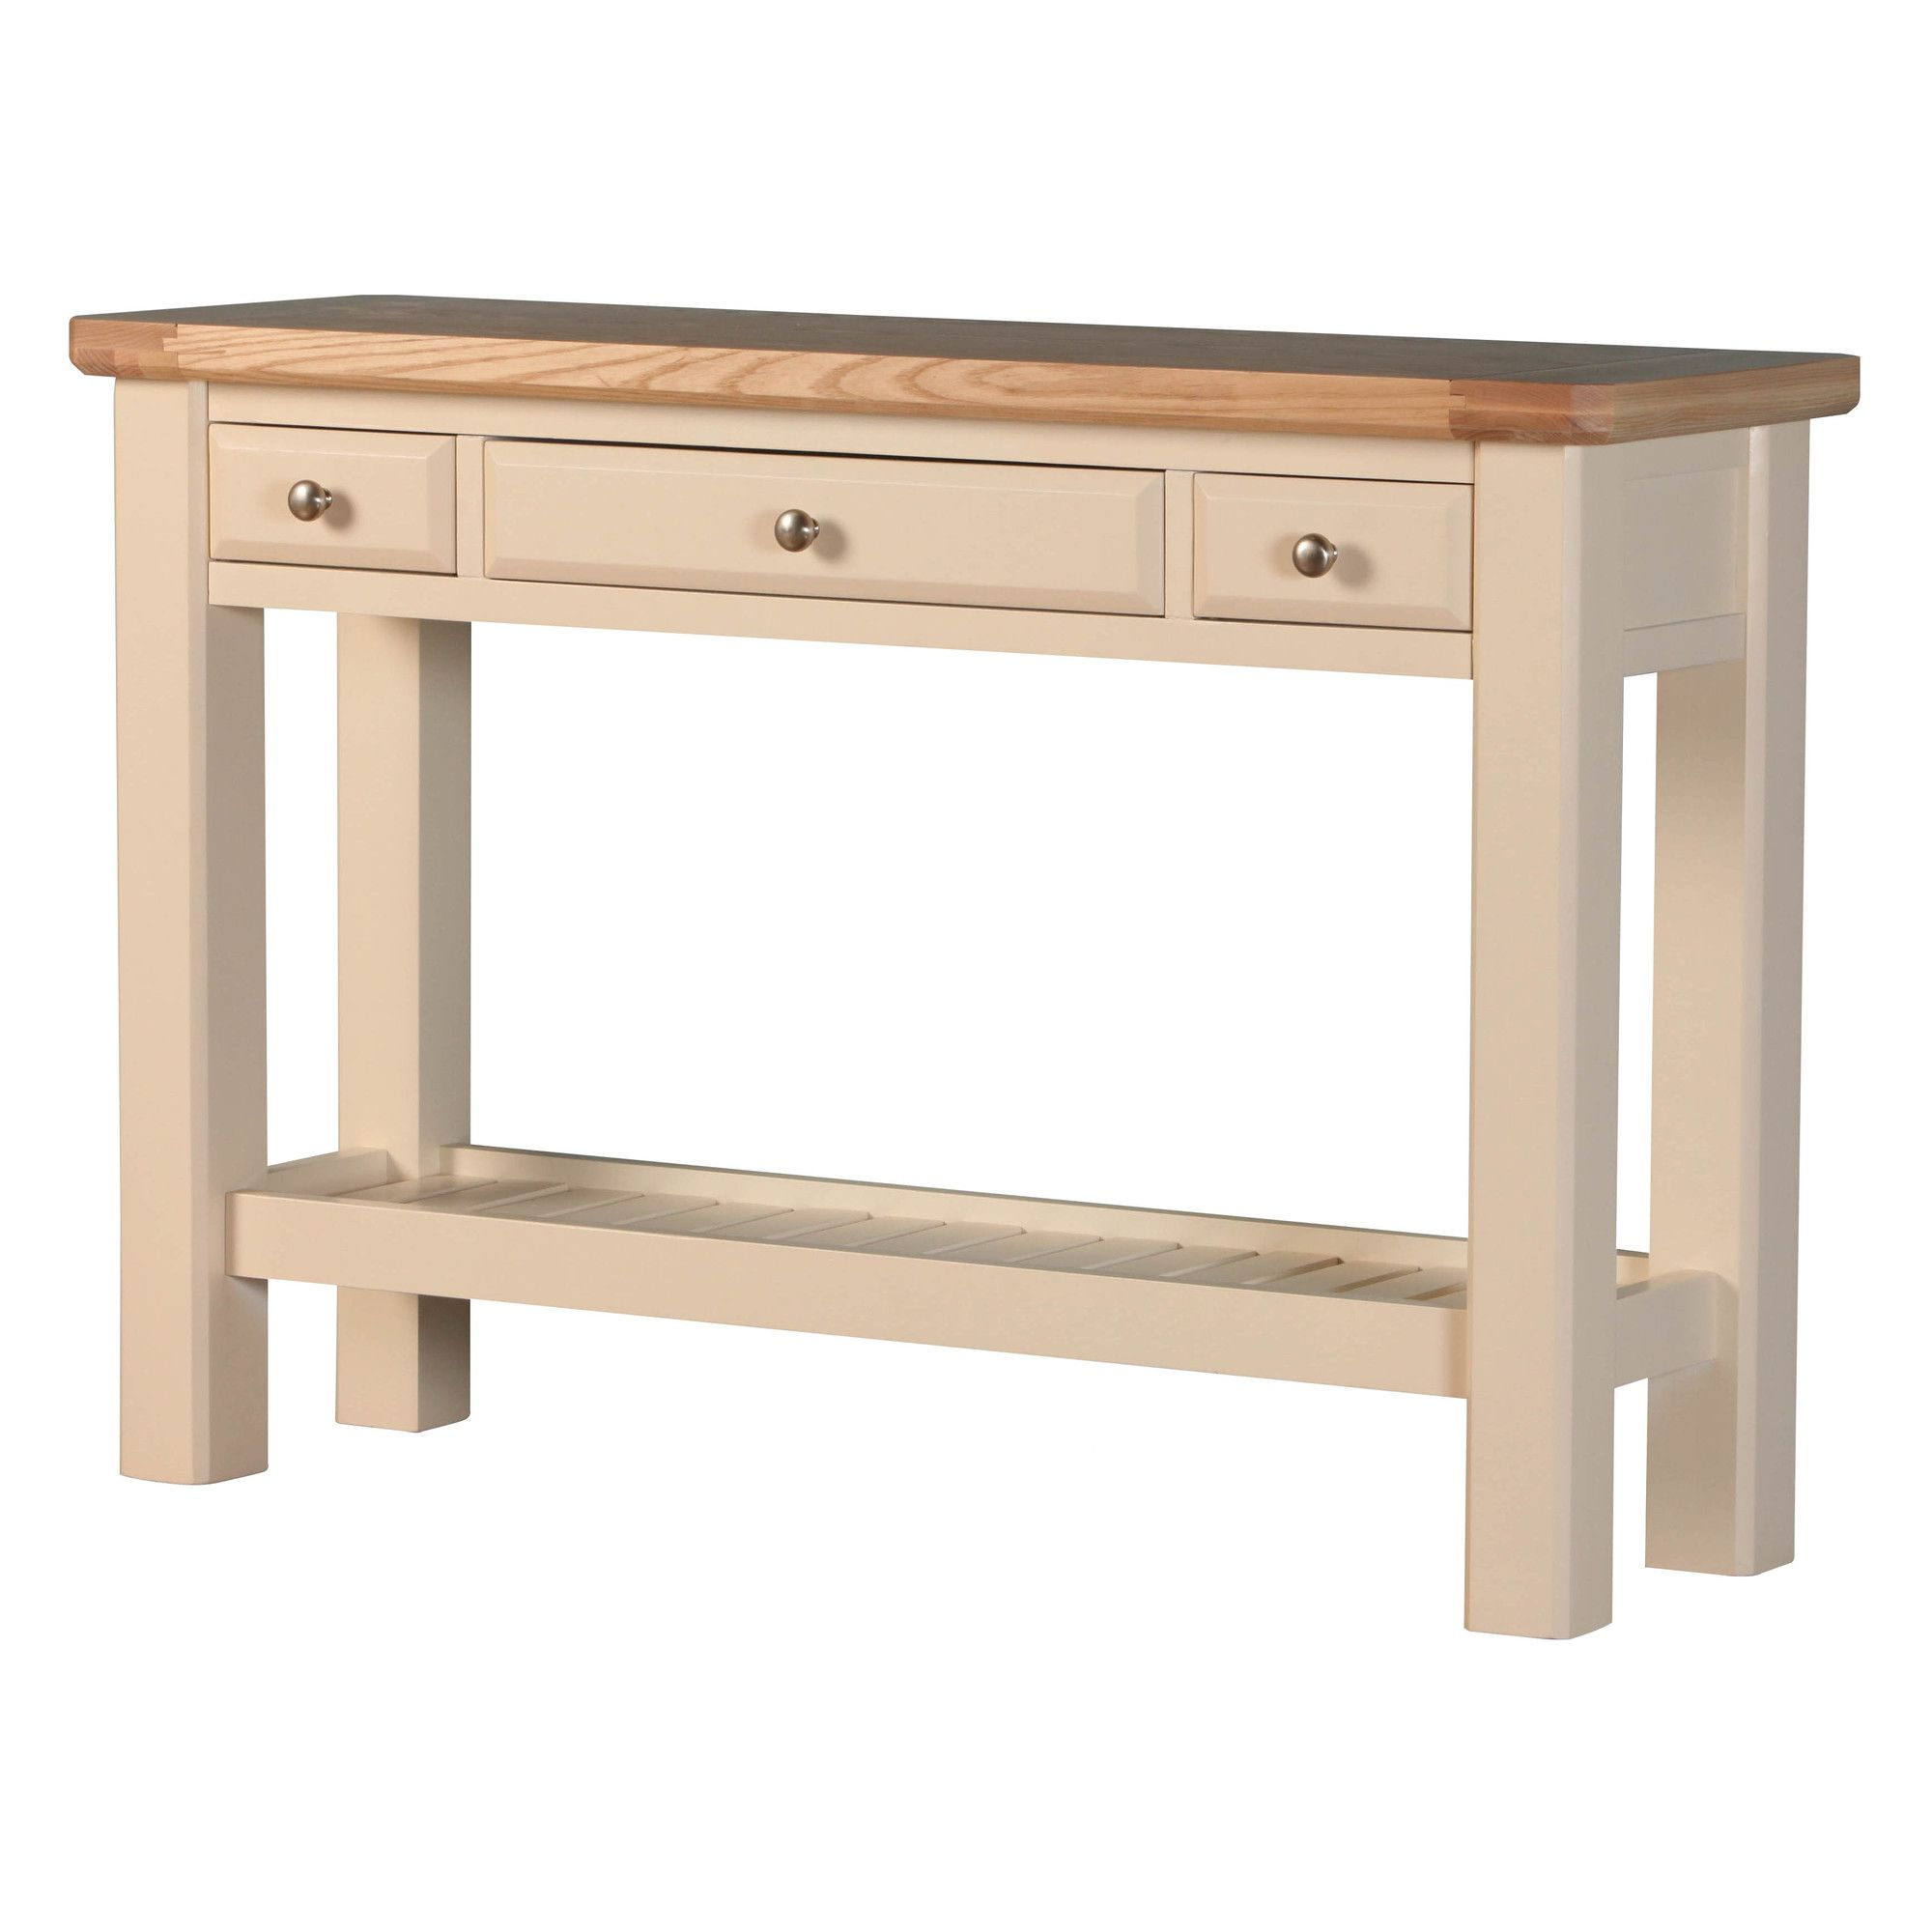 Altruna Rayleigh Console Table - Painted Cream